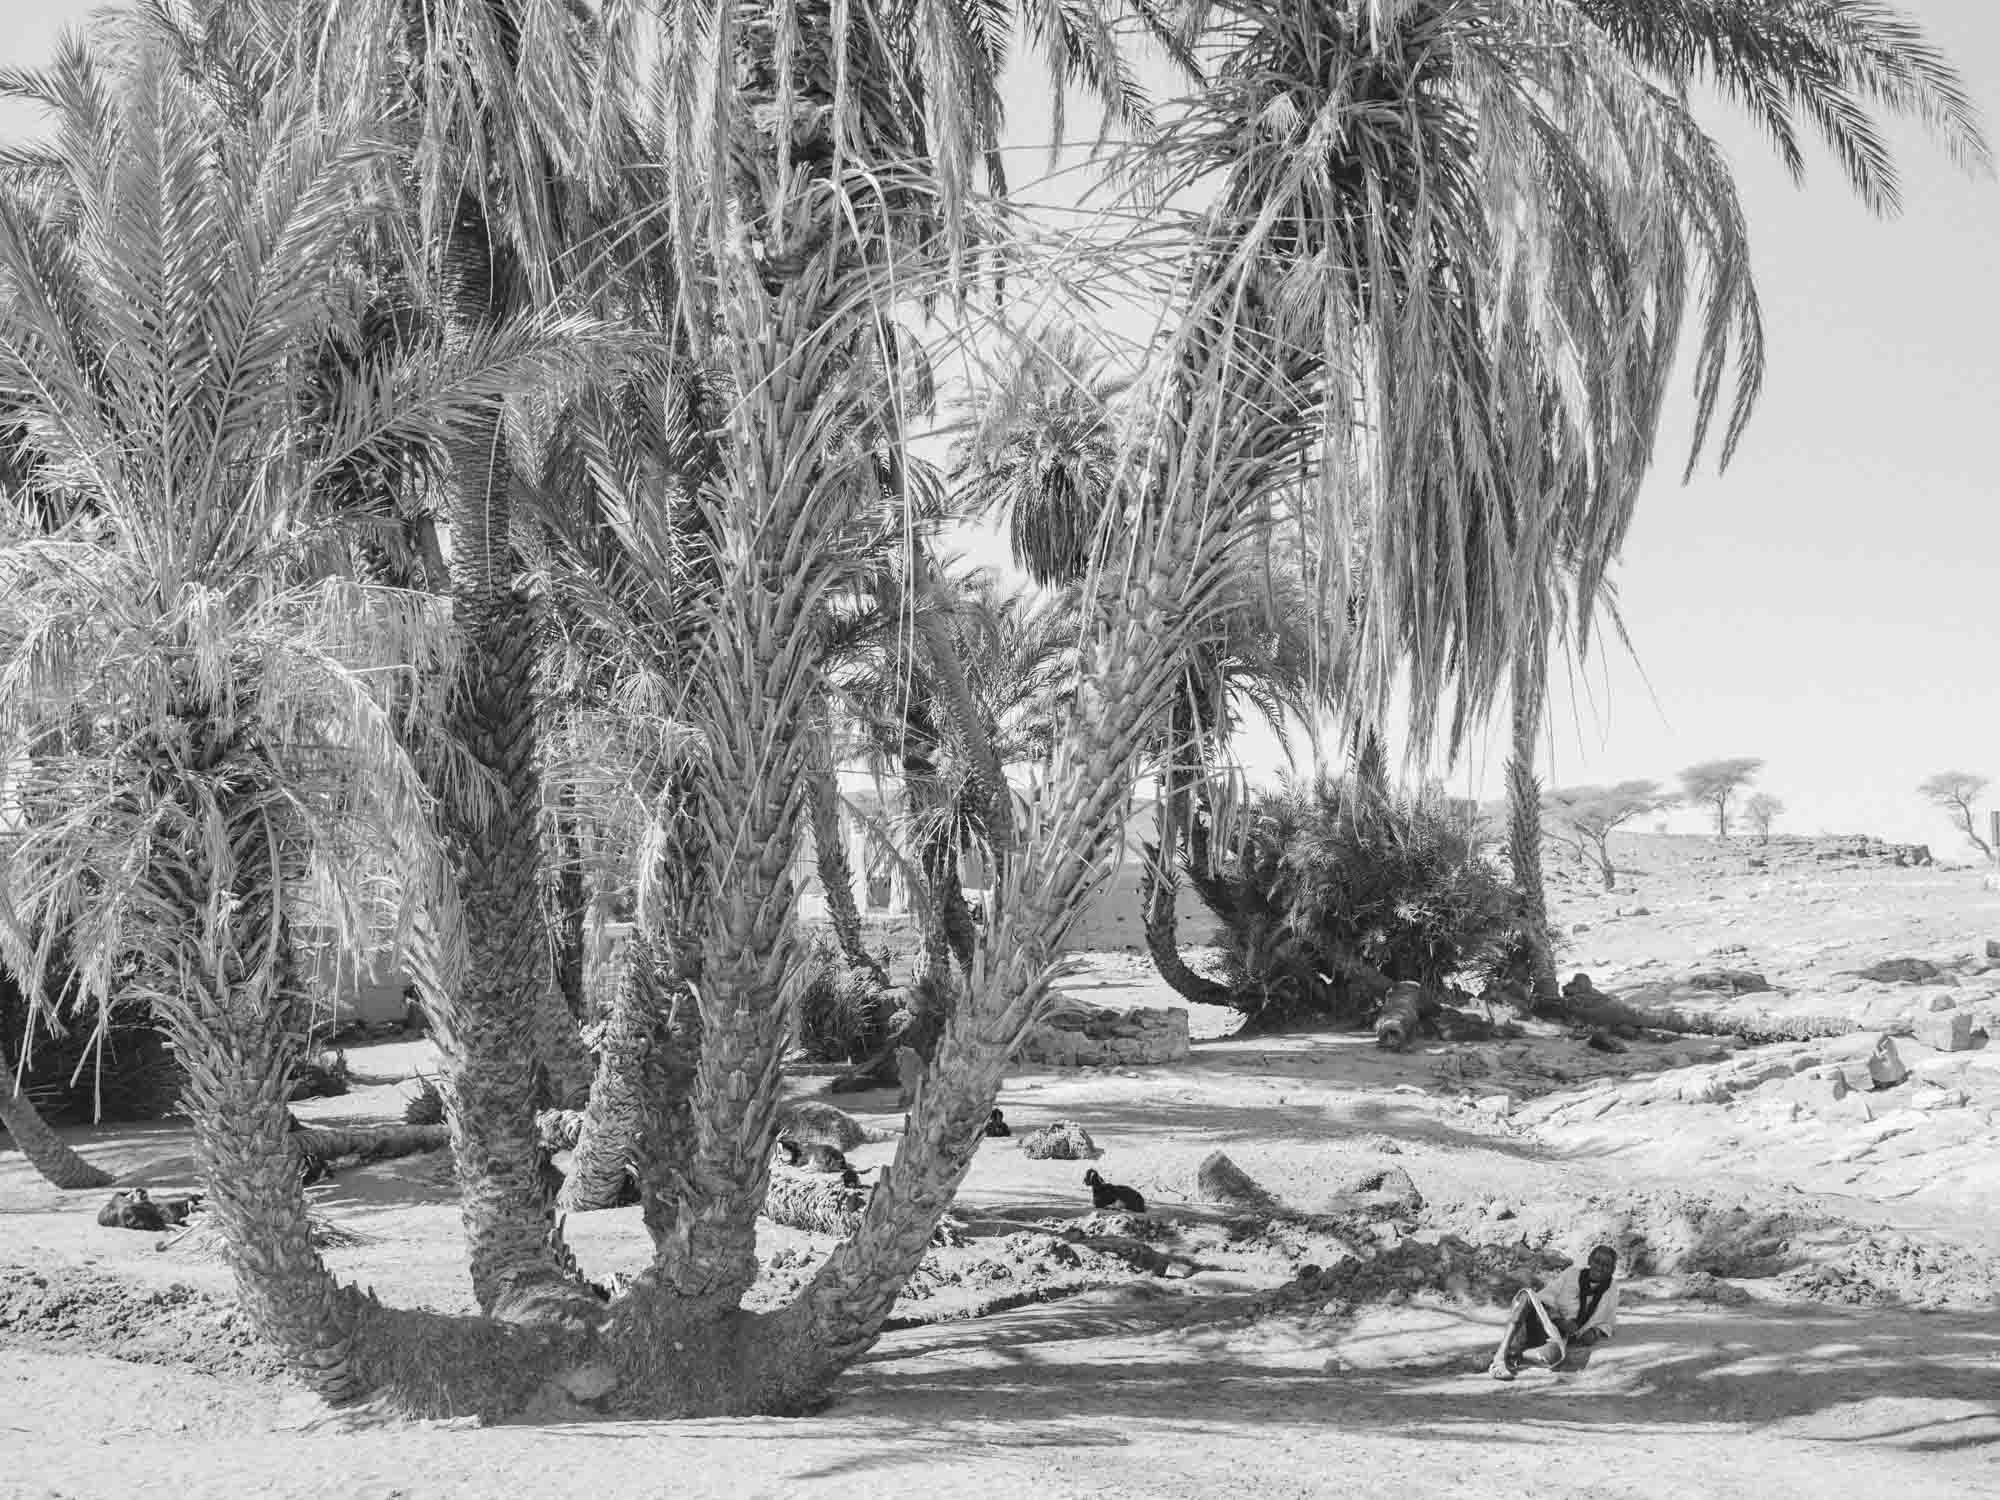 Traditional Berber Shepherd with Goats Taking Shade Under Palm Trees at Desert Camp Morocco